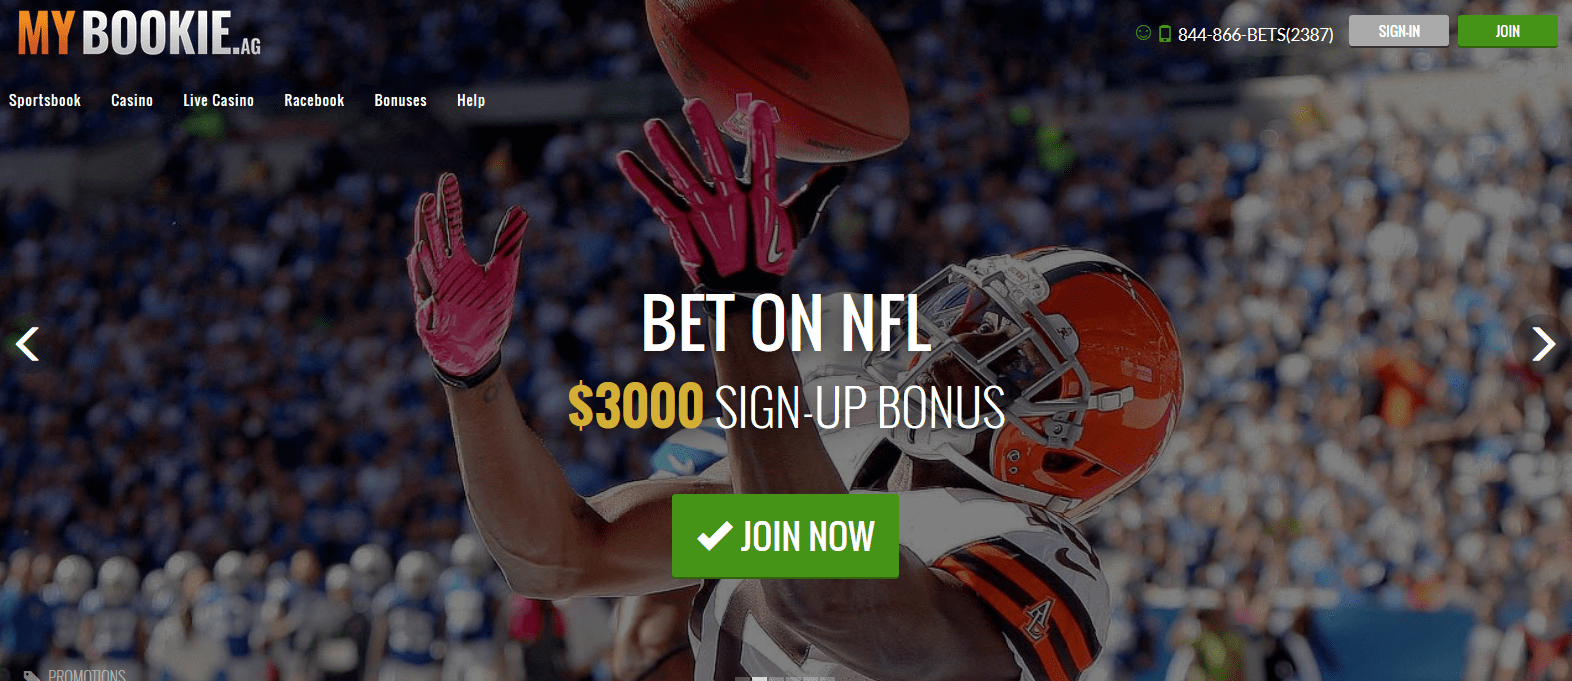 superbowl bet line best us online sportsbook